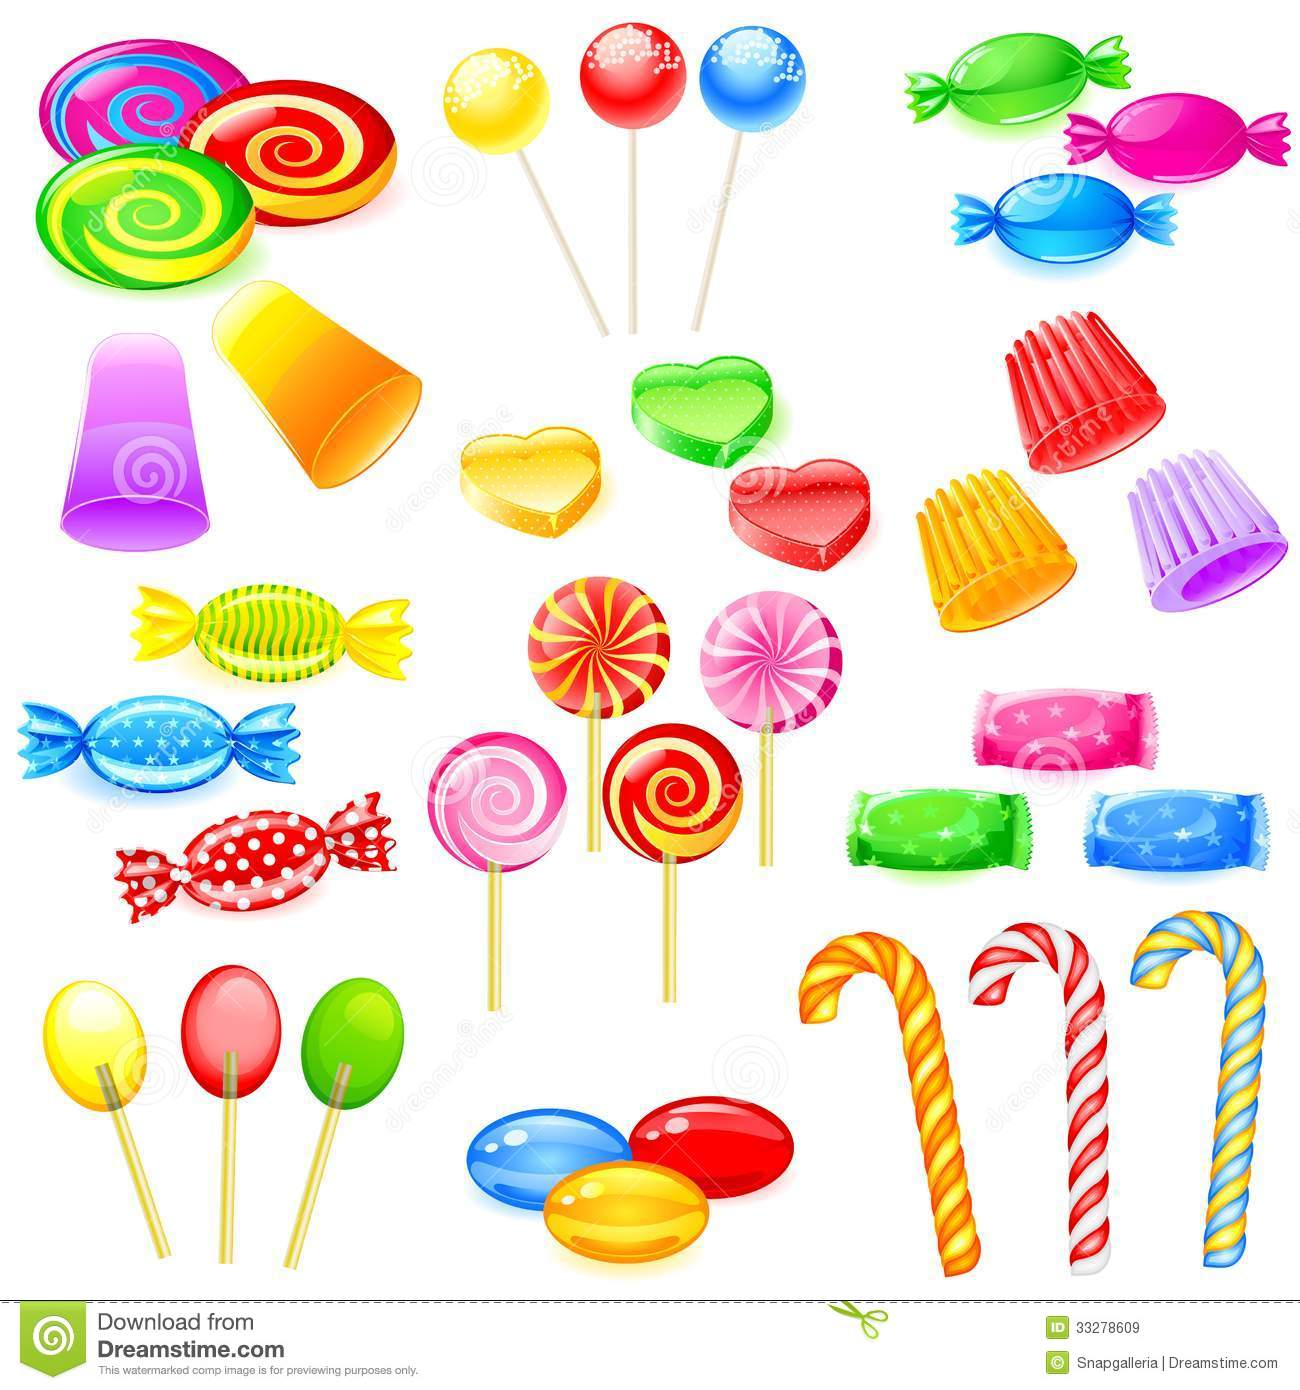 Sweet Candy Clipart | www.galleryhip.com - The Hippest Pics